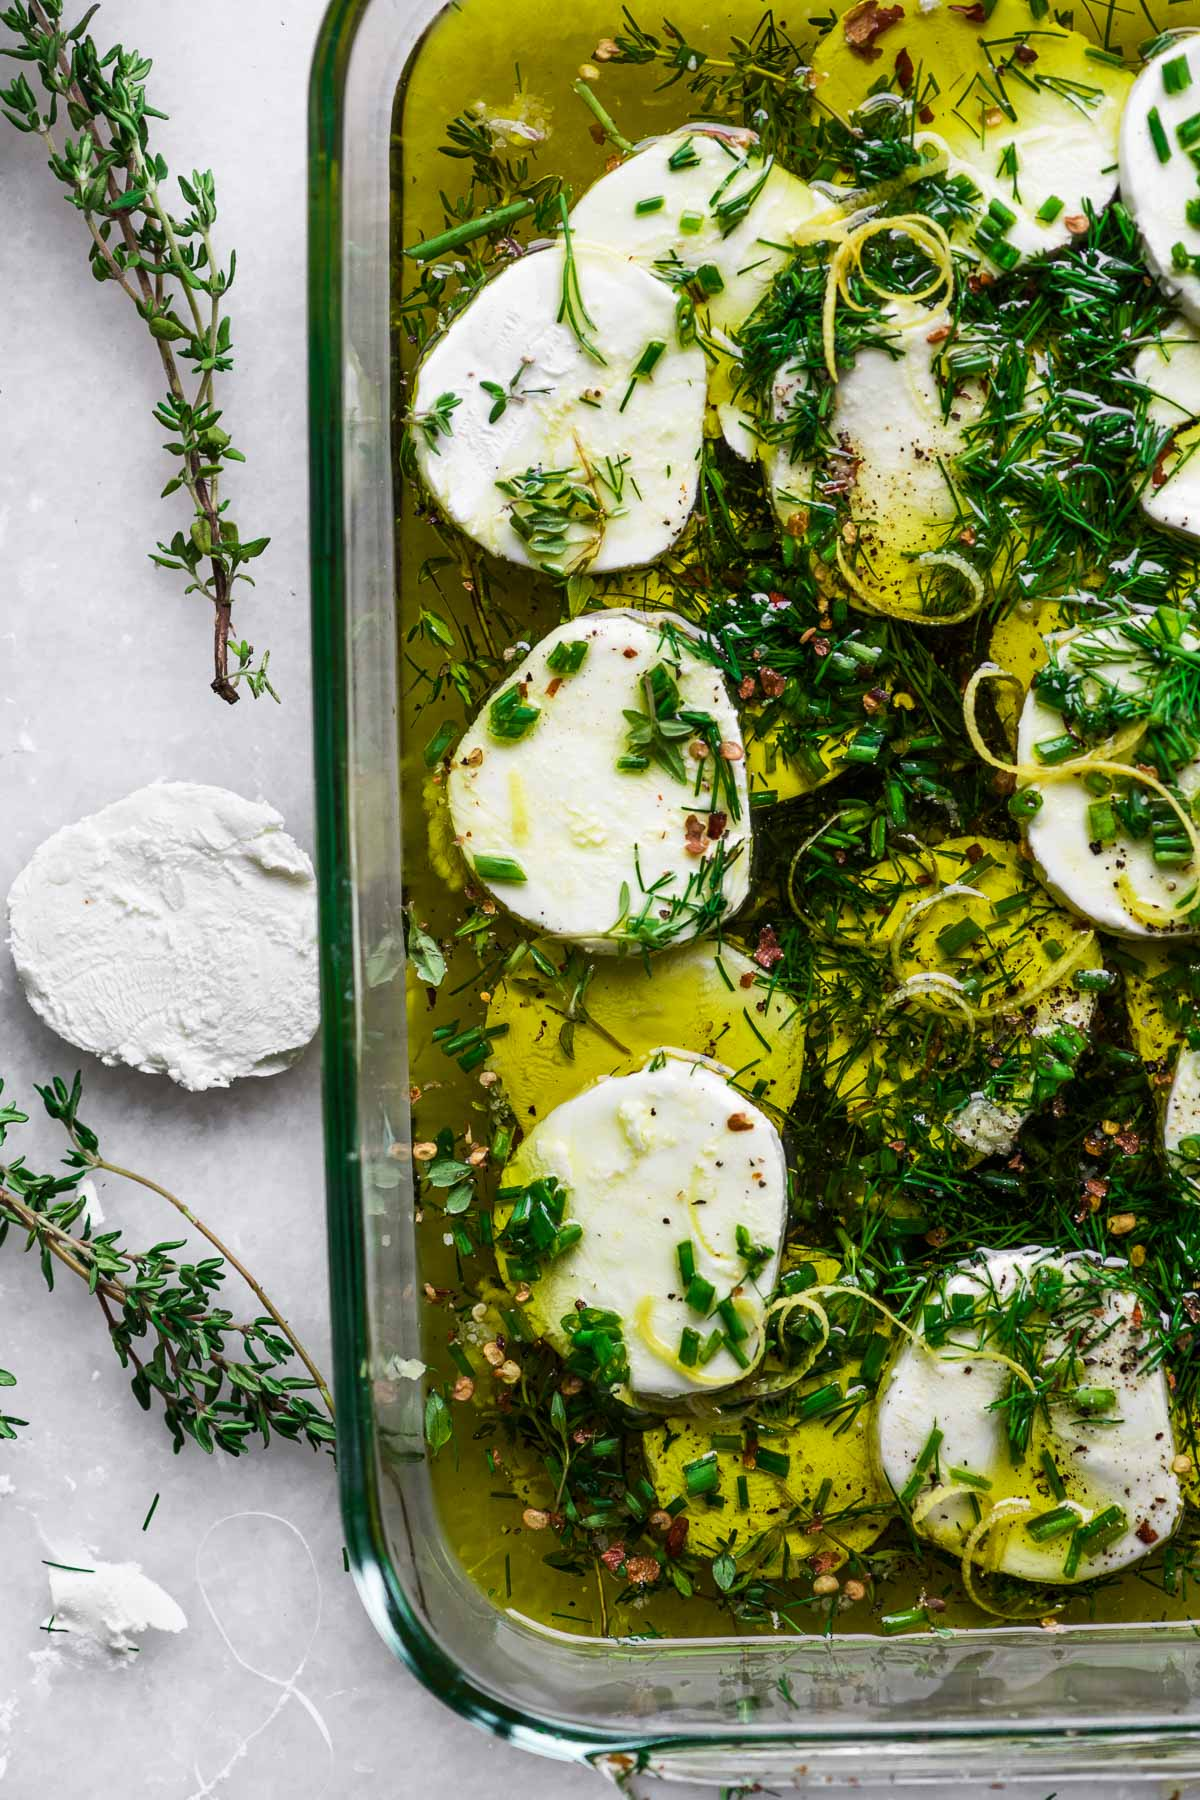 goat cheese slices marinating in oil and herbs